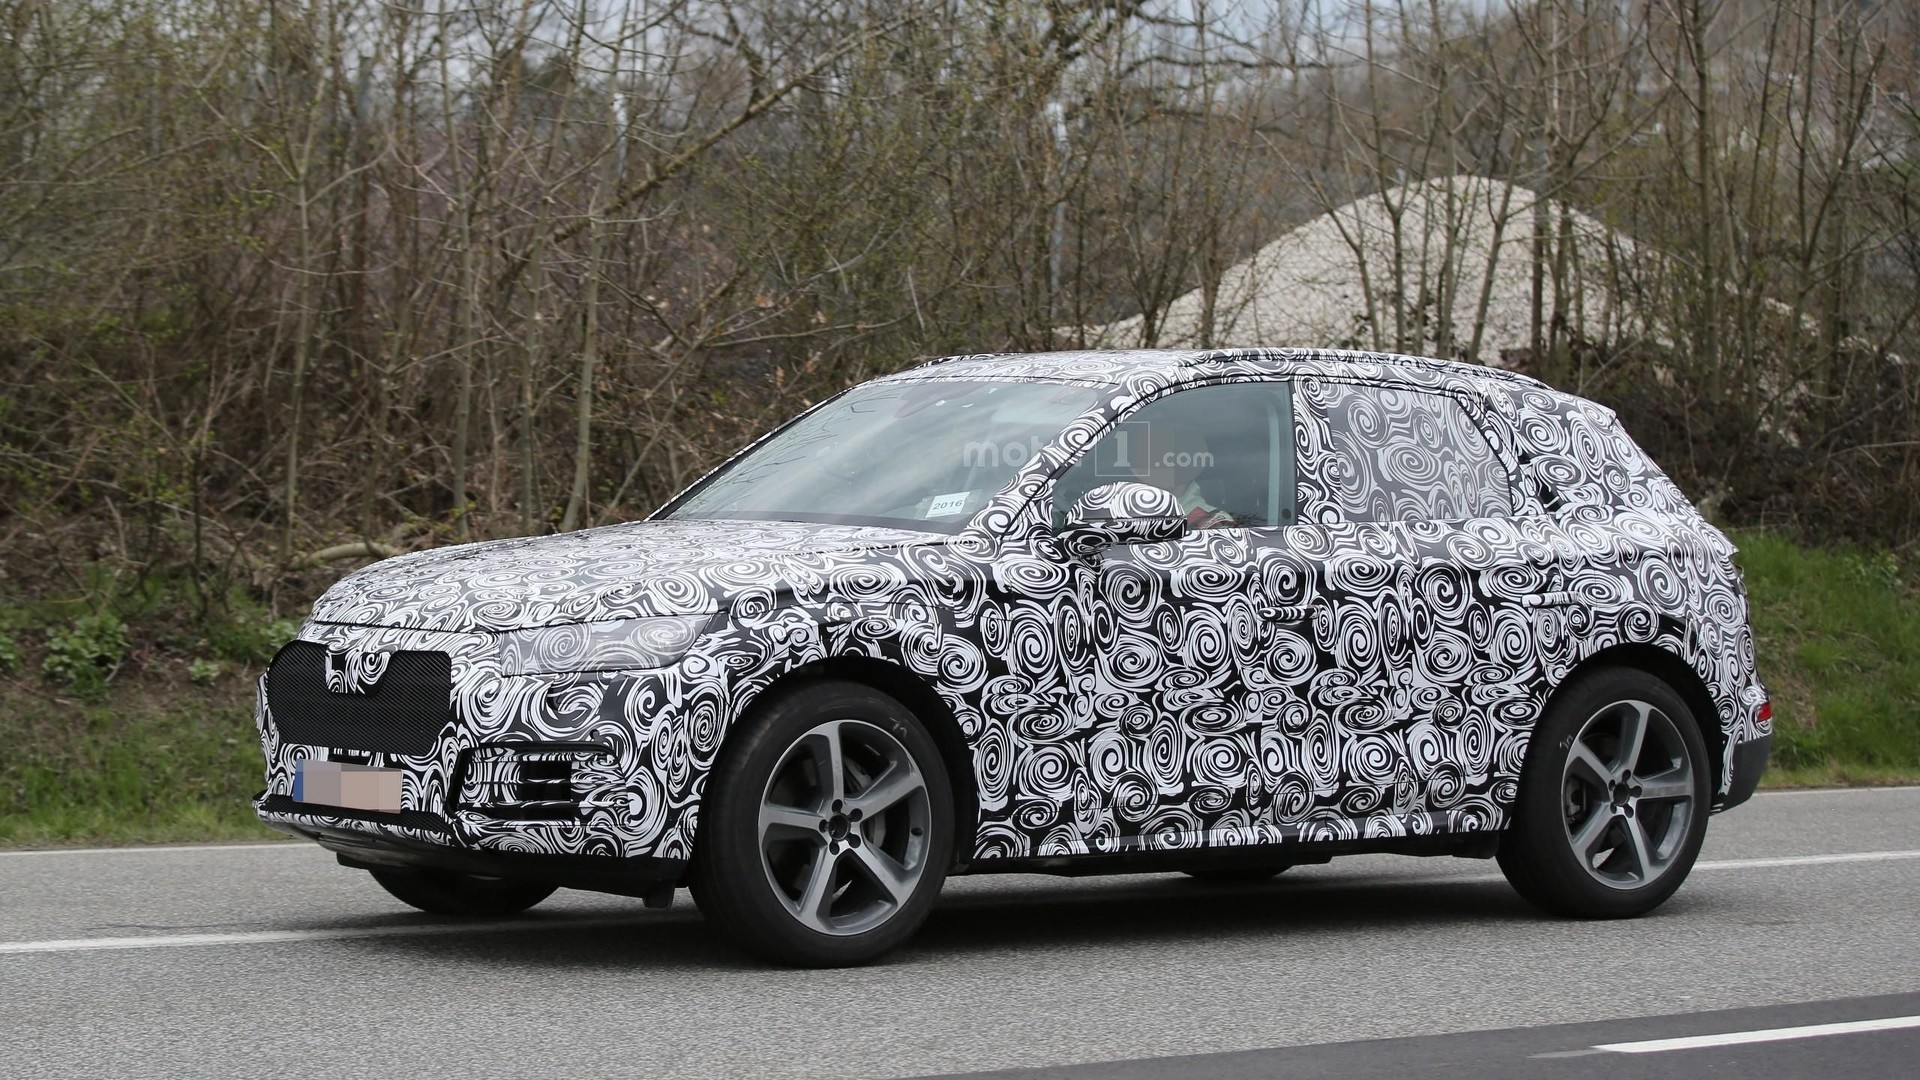 2018 Audi SQ5 diesel to adopt 48V electric compressor from SQ7